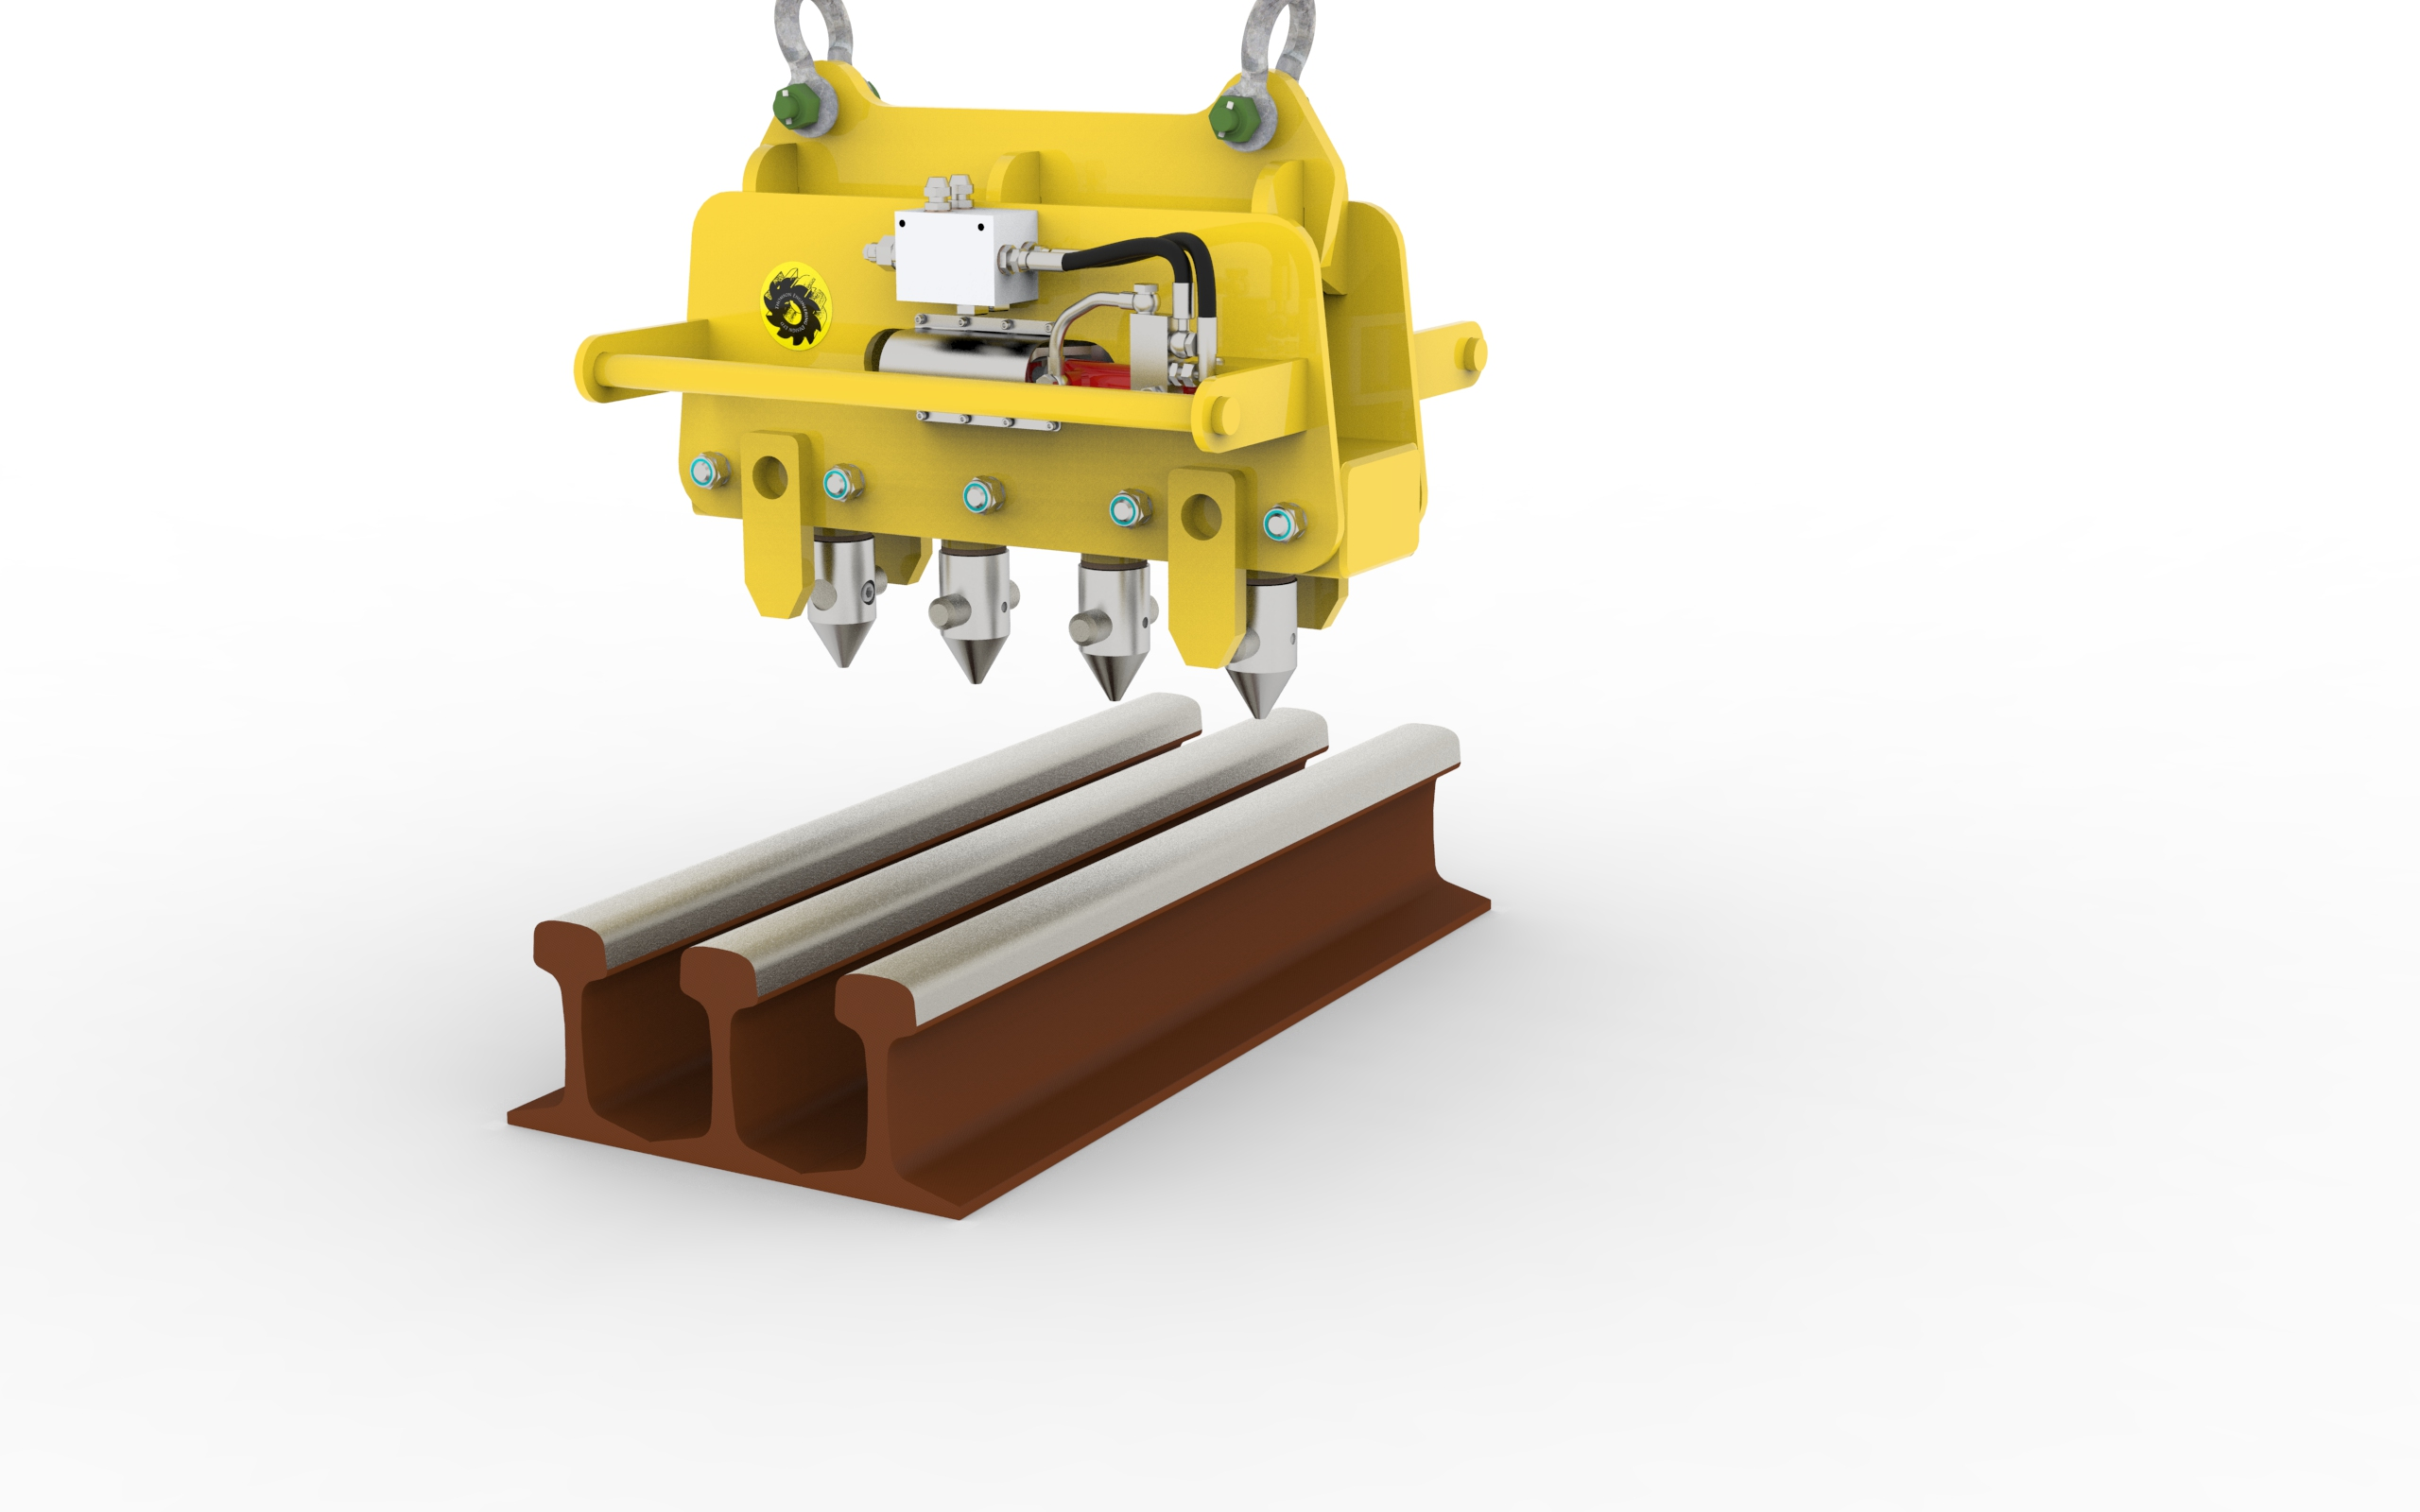 Hydraulic rail lifter for mechanic industry